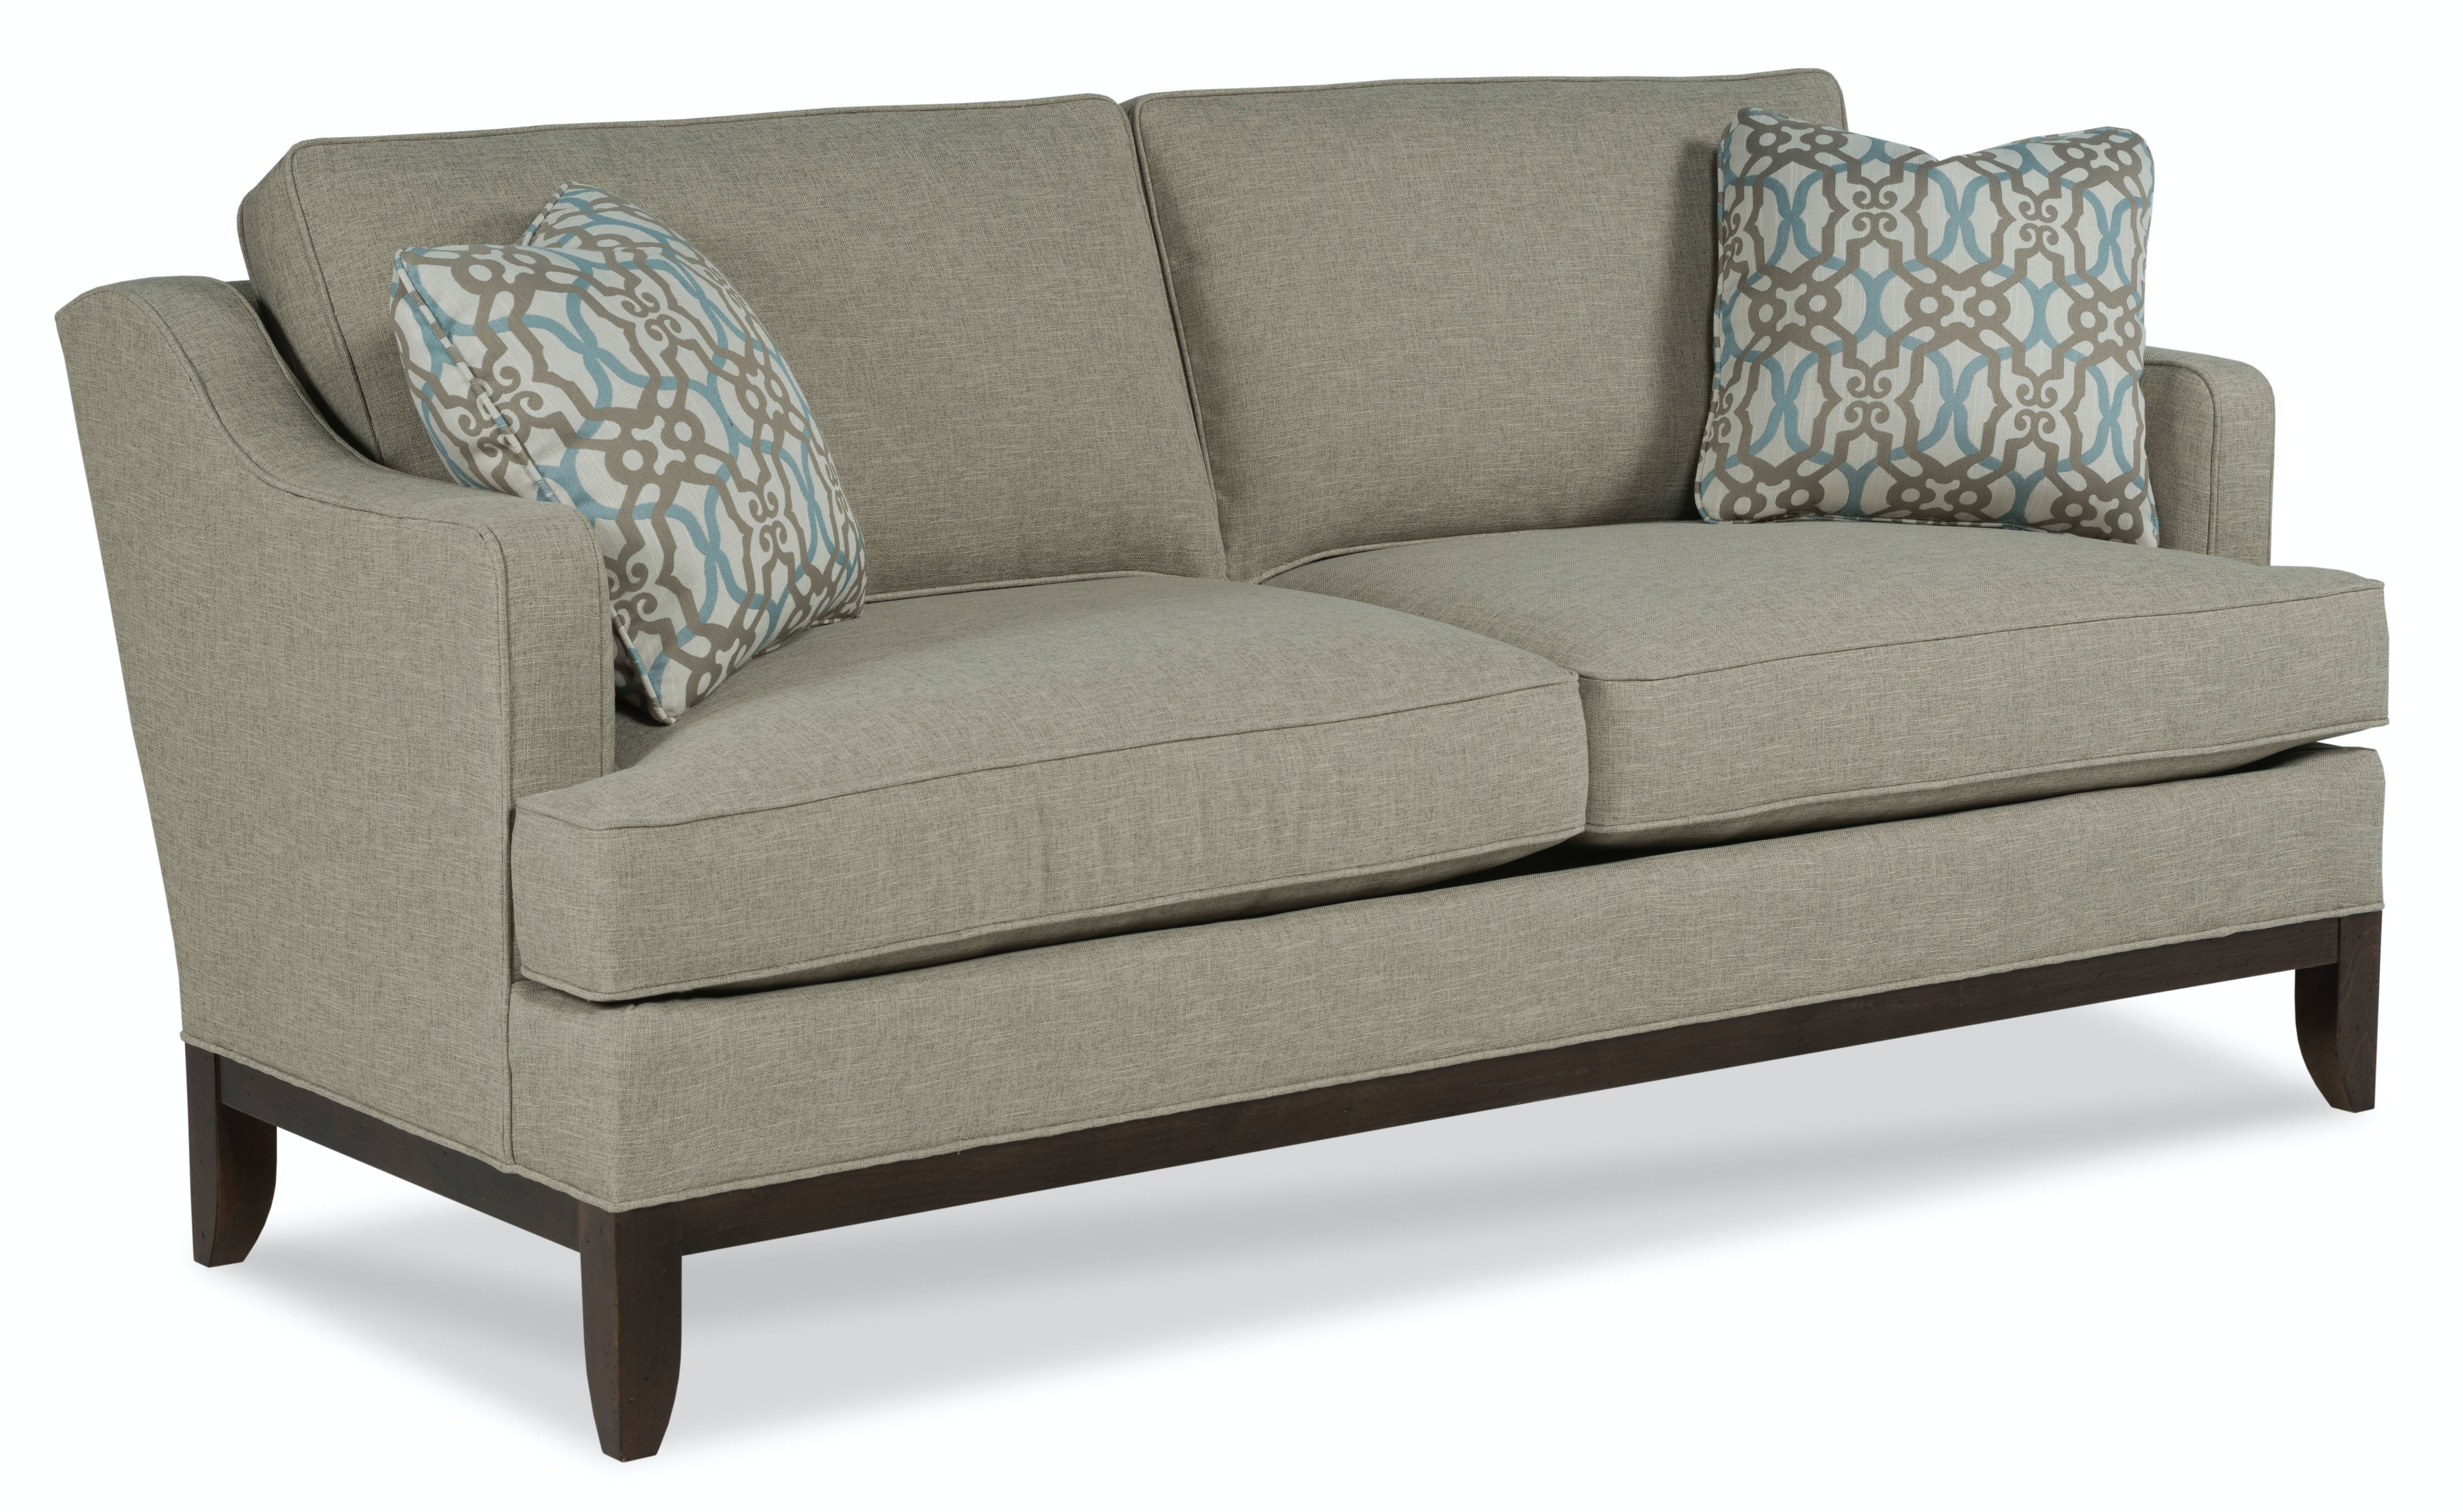 Fairfield Chair Company Living Room Sofa 2714 50 D  : 2714 50 from www.dnoblinfurniture.com size 1024 x 768 jpeg 52kB